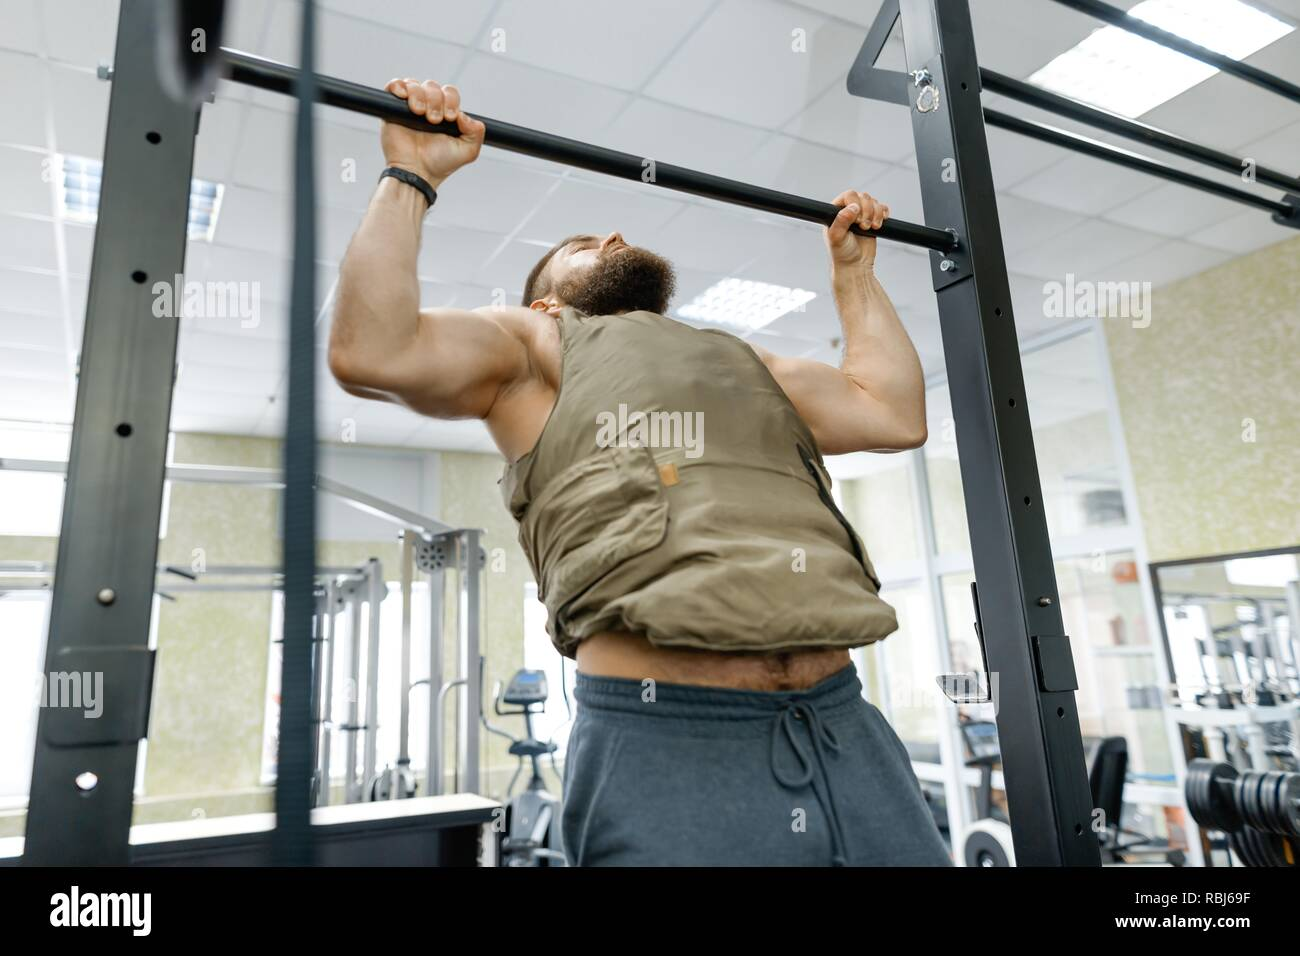 Military sport, muscular caucasian bearded adult man doing exercises in the gym dressed in bulletproof armored vest. - Stock Image